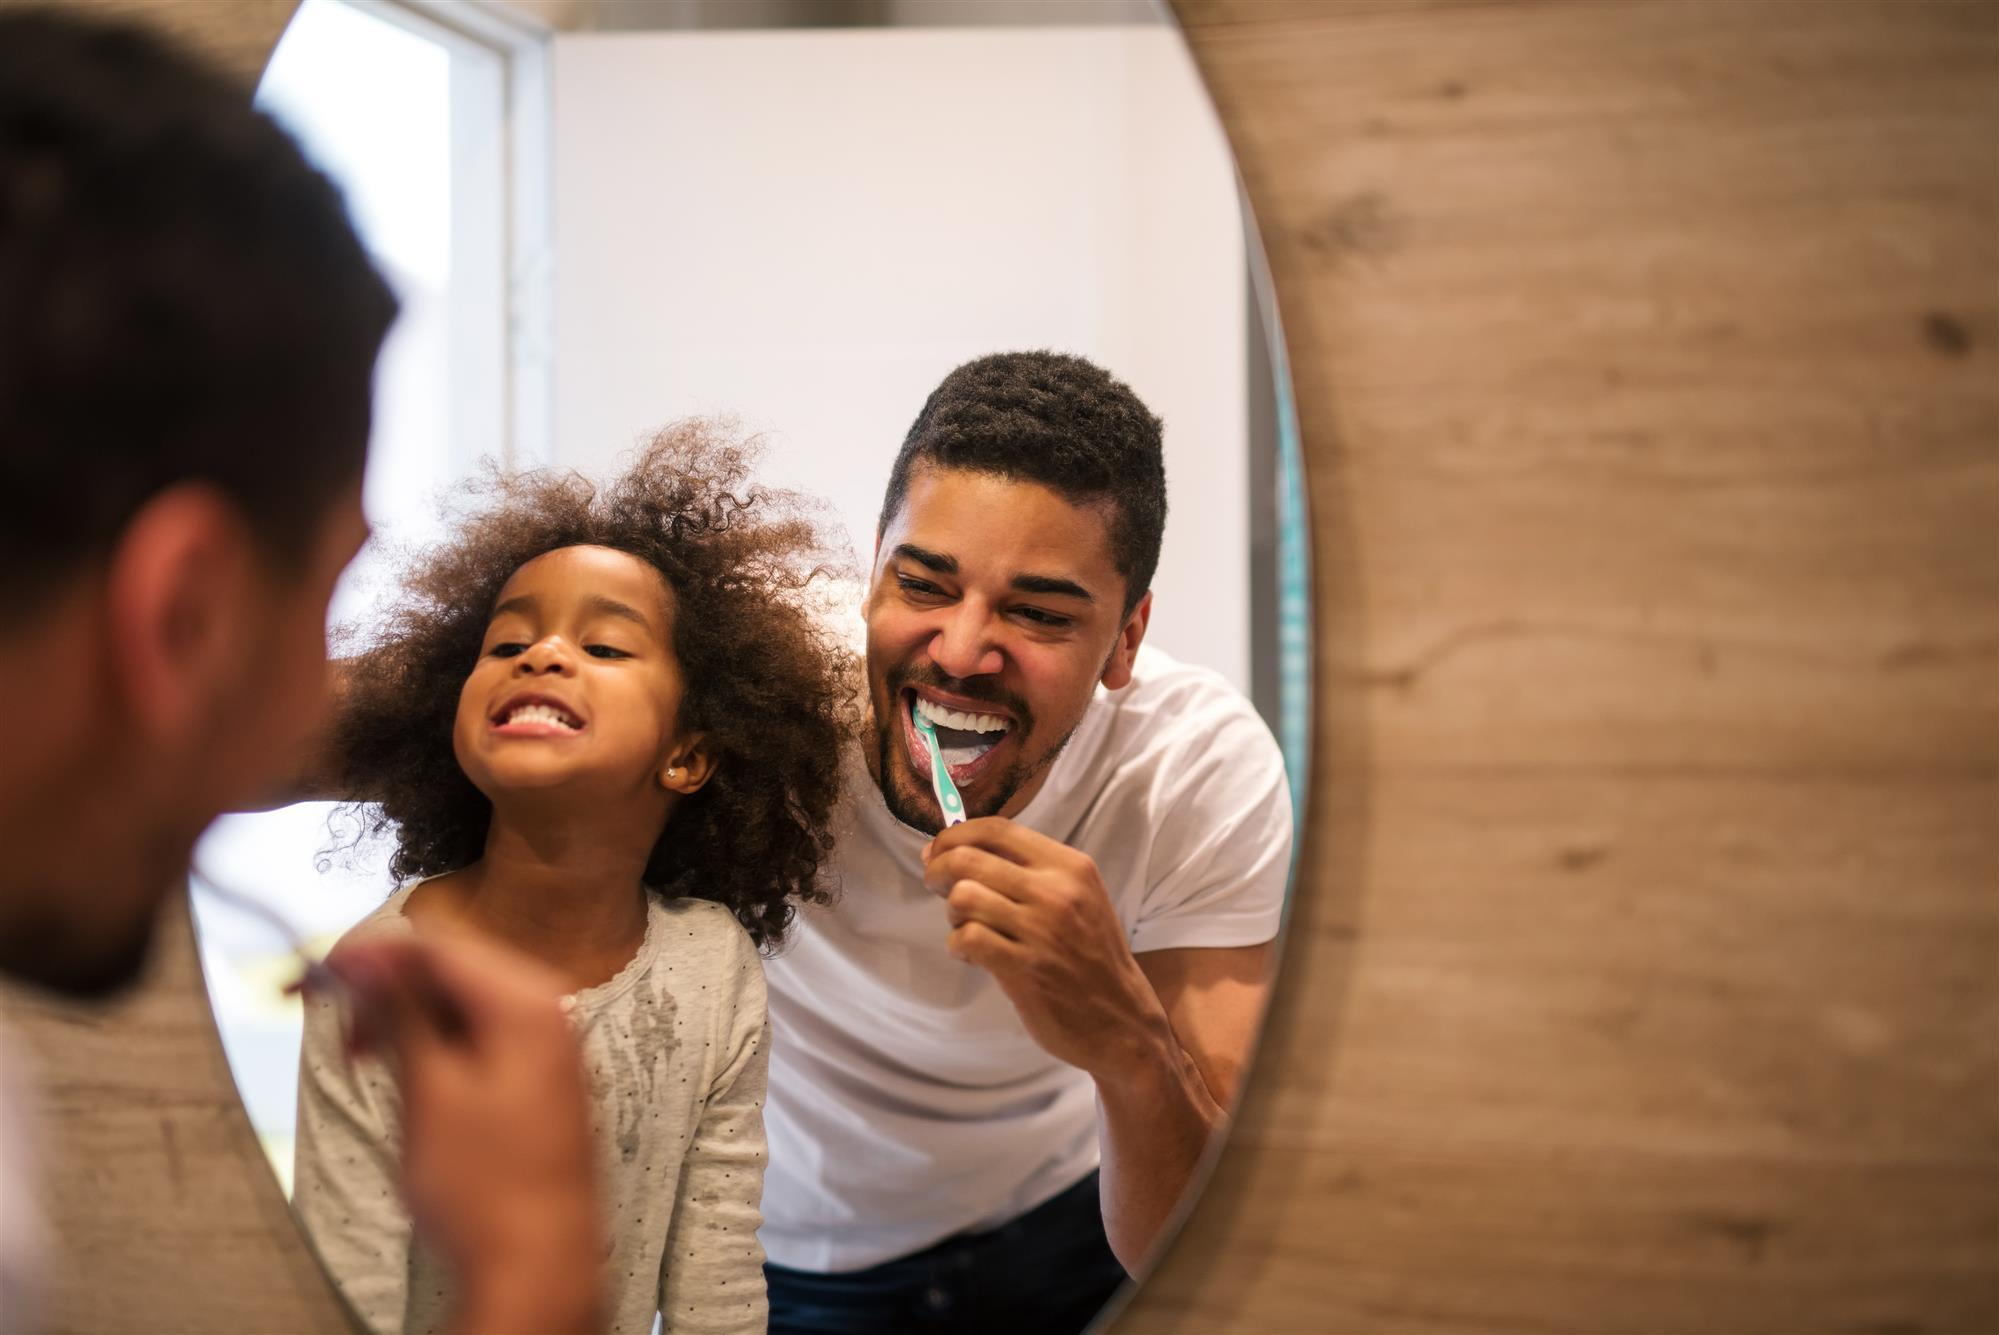 african amerian girl brushing teeth with dad